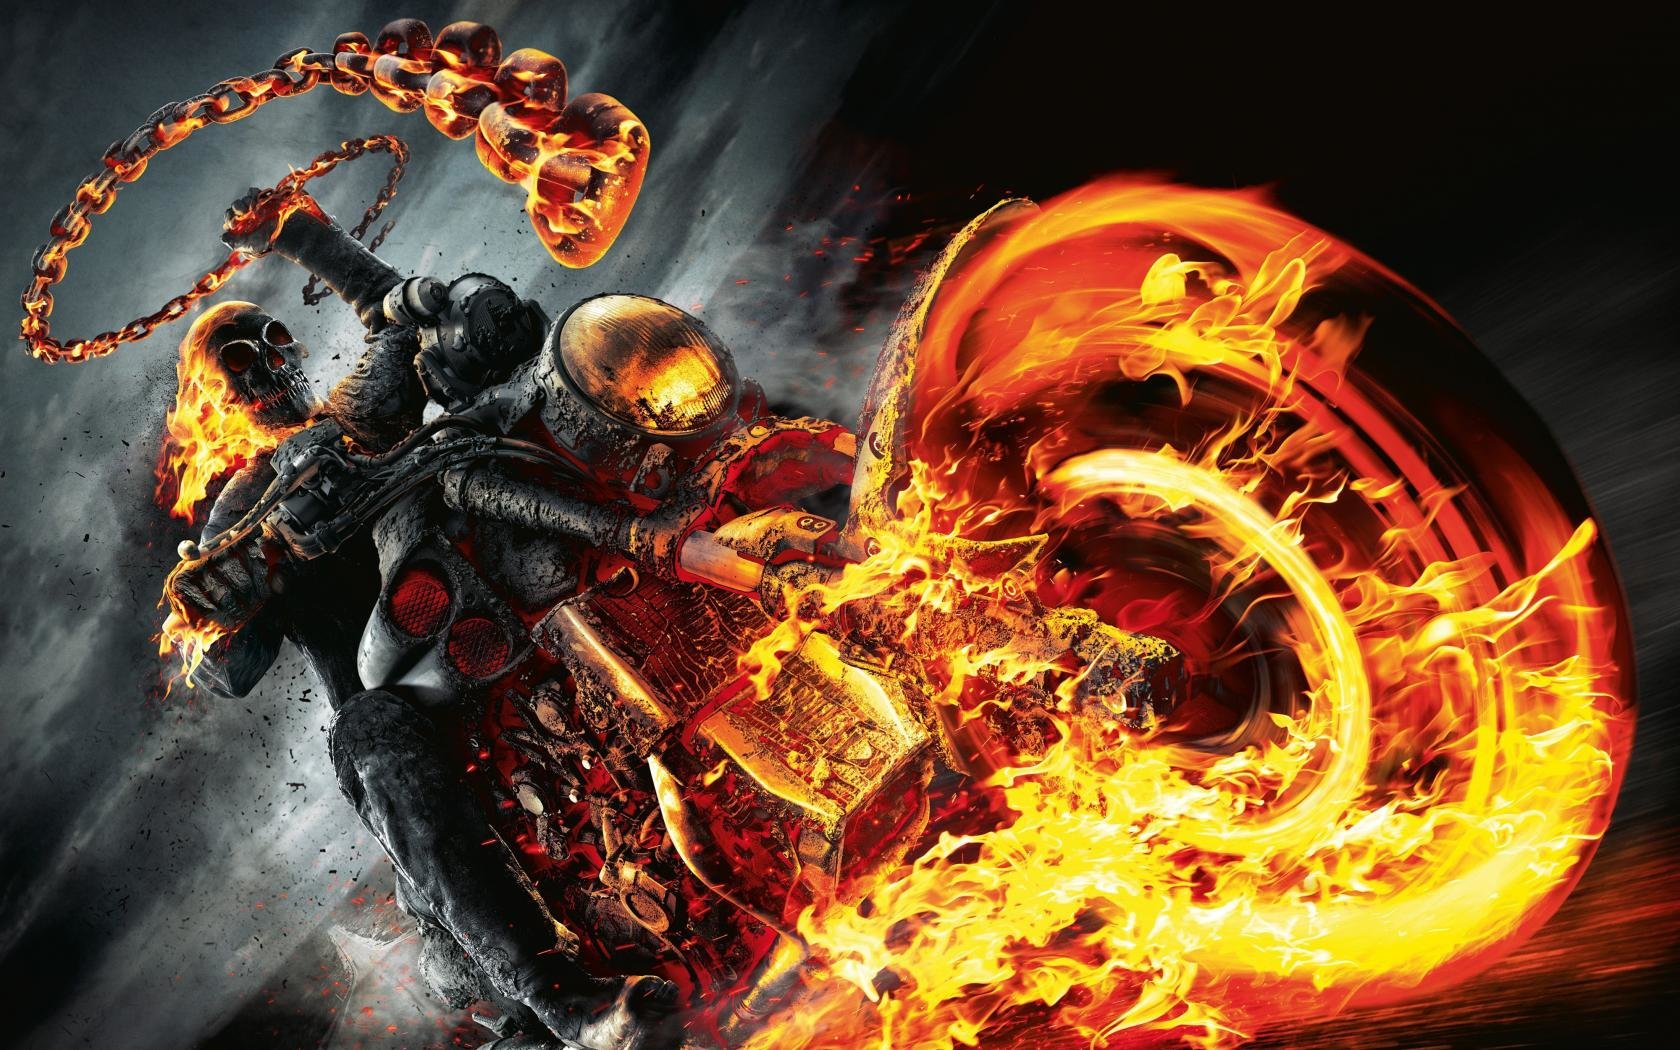 Download hd 1680x1050 Ghost Rider desktop background ID:29420 for free